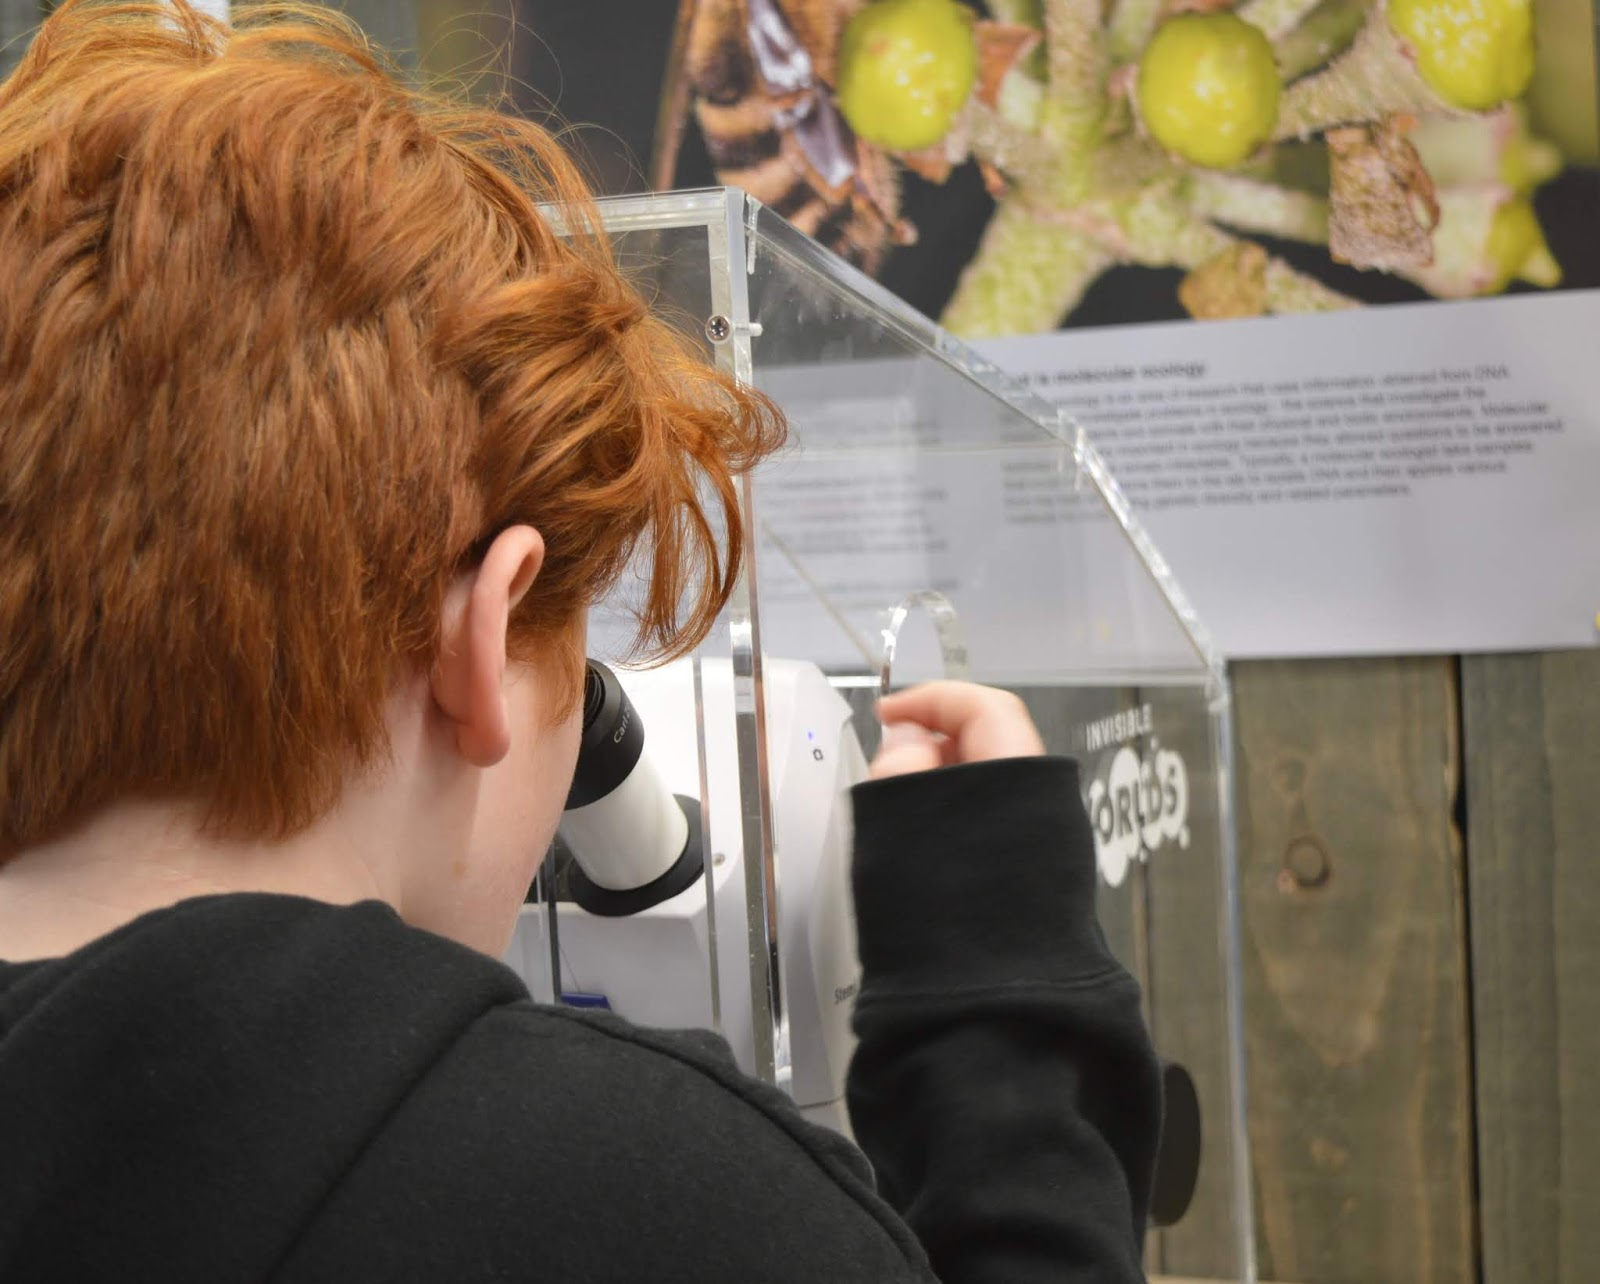 10 Reasons to Visit the Eden Project in Winter  - using microscopes in the lab